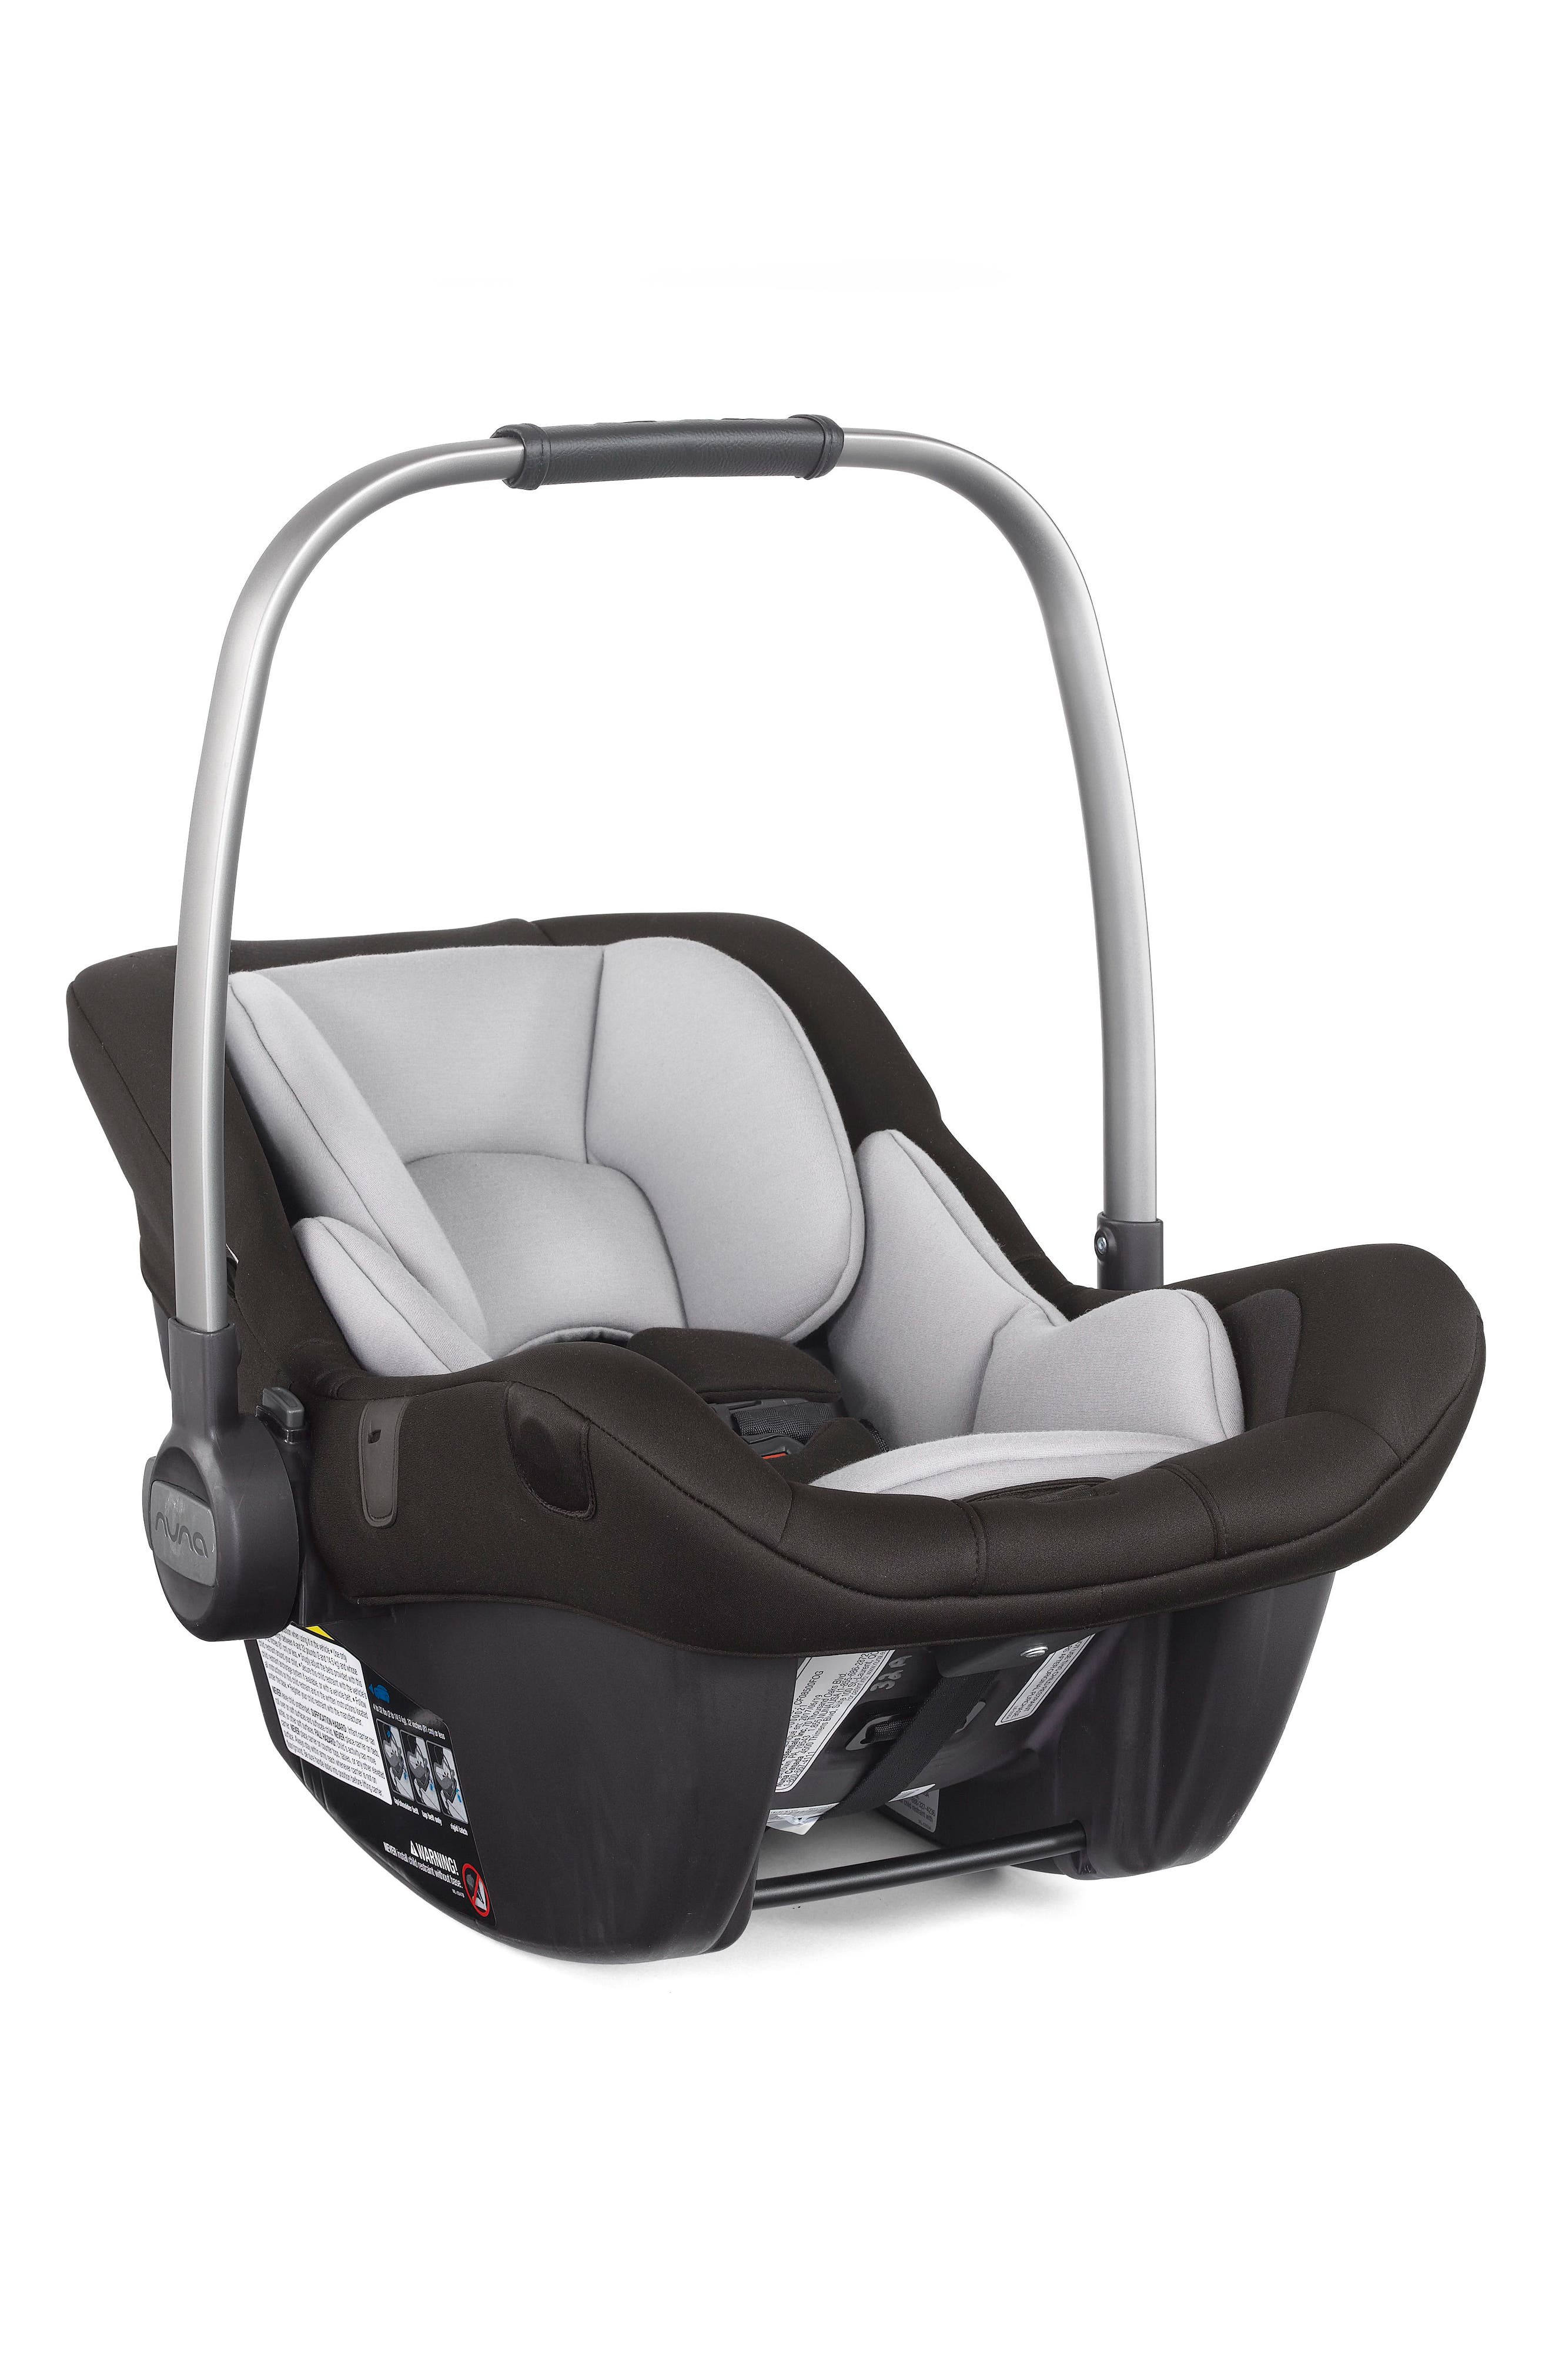 2017 PIPA<sup>™</sup> Lite LX Infant Car Seat & Base,                             Alternate thumbnail 10, color,                             Caviar